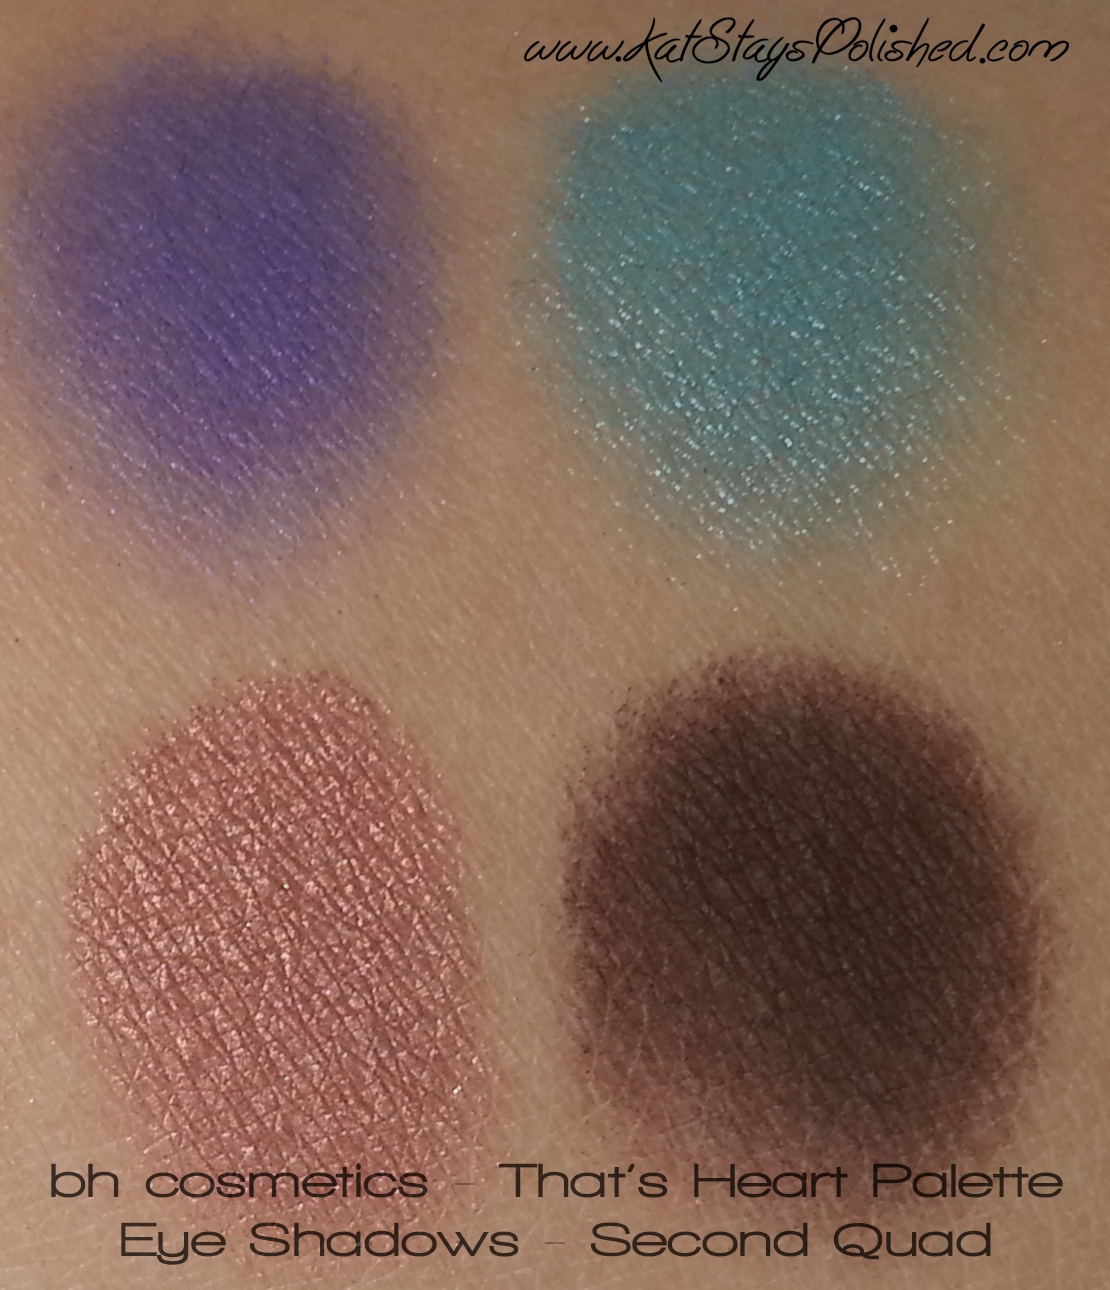 BH Cosmetics - That's Heart Palette | Kat Stays Polished